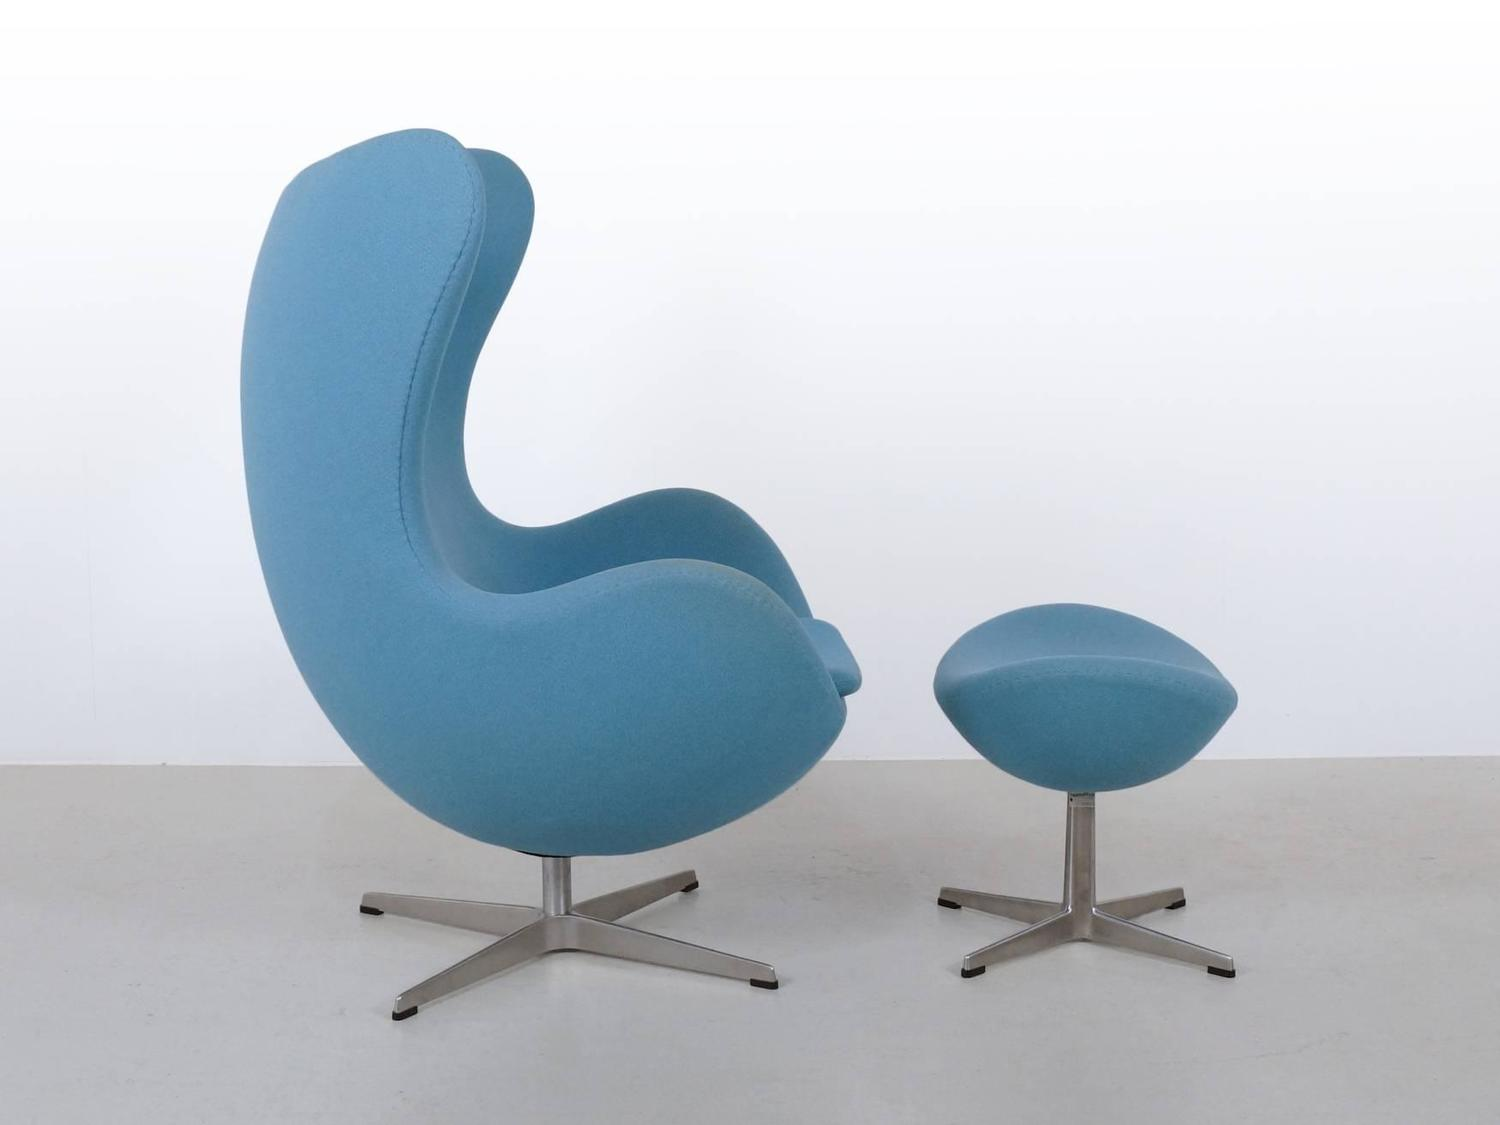 arne jacobsen egg chair blue. Black Bedroom Furniture Sets. Home Design Ideas